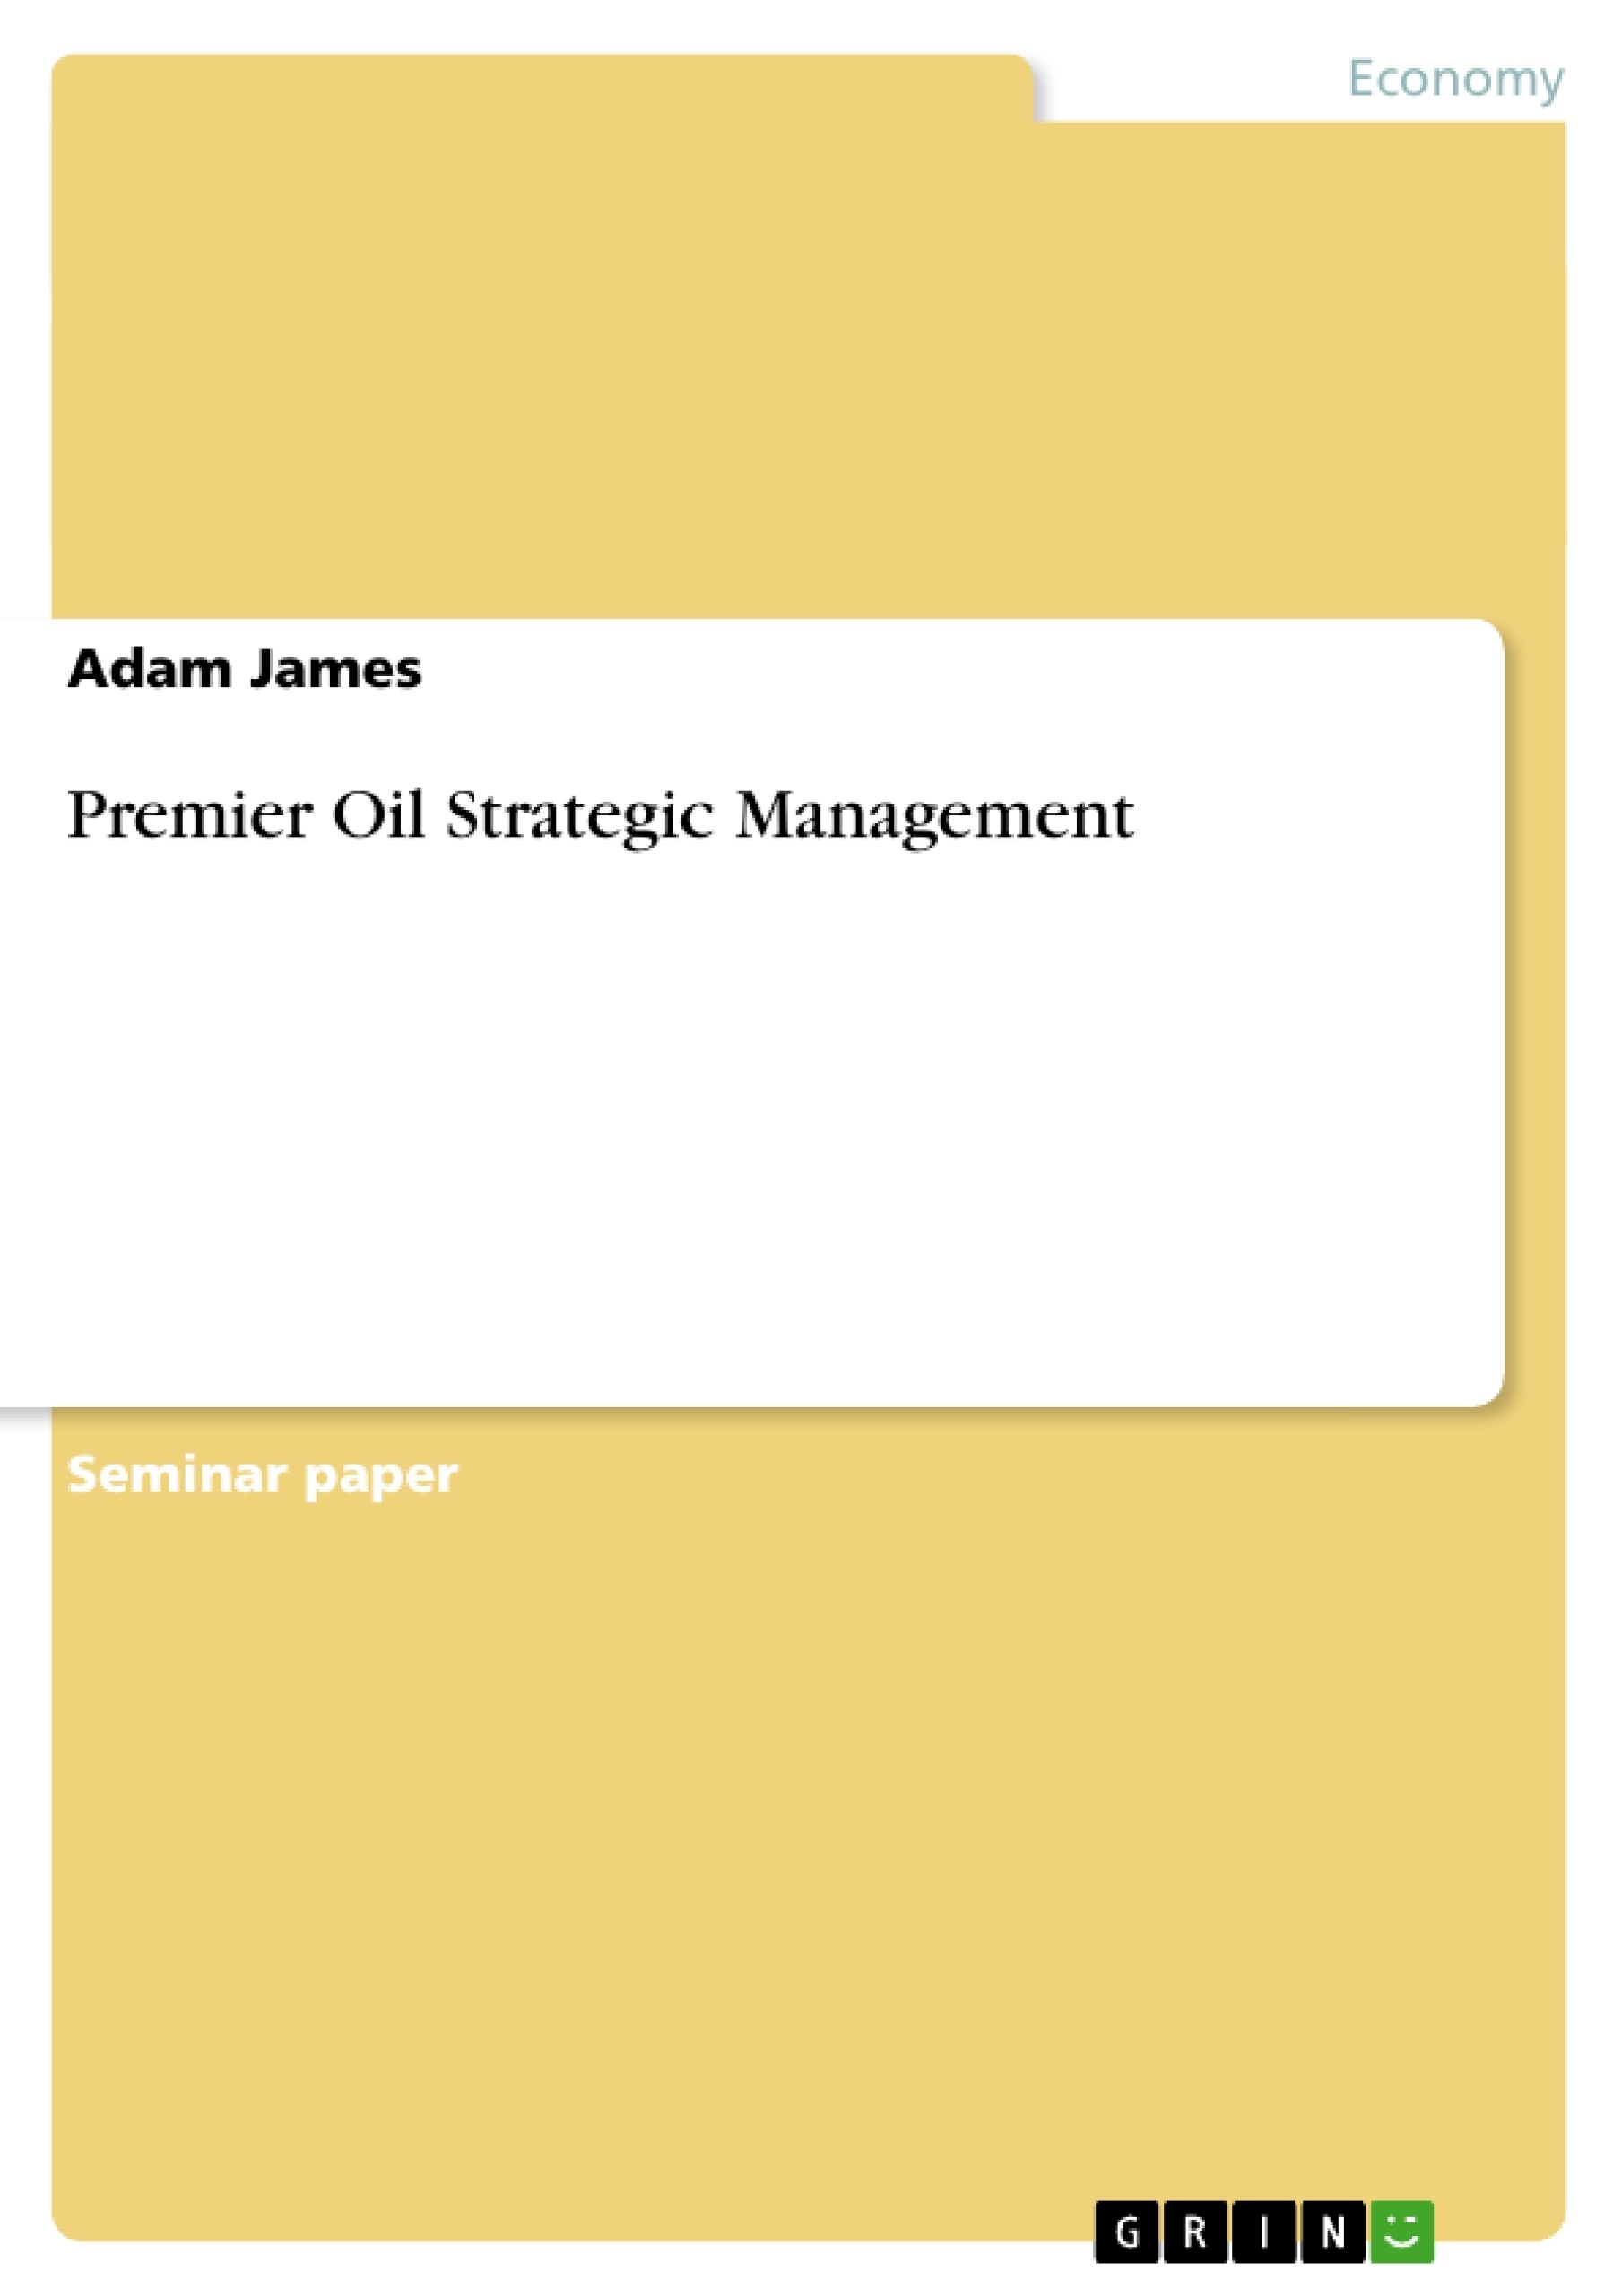 Title: Premier Oil Strategic Management